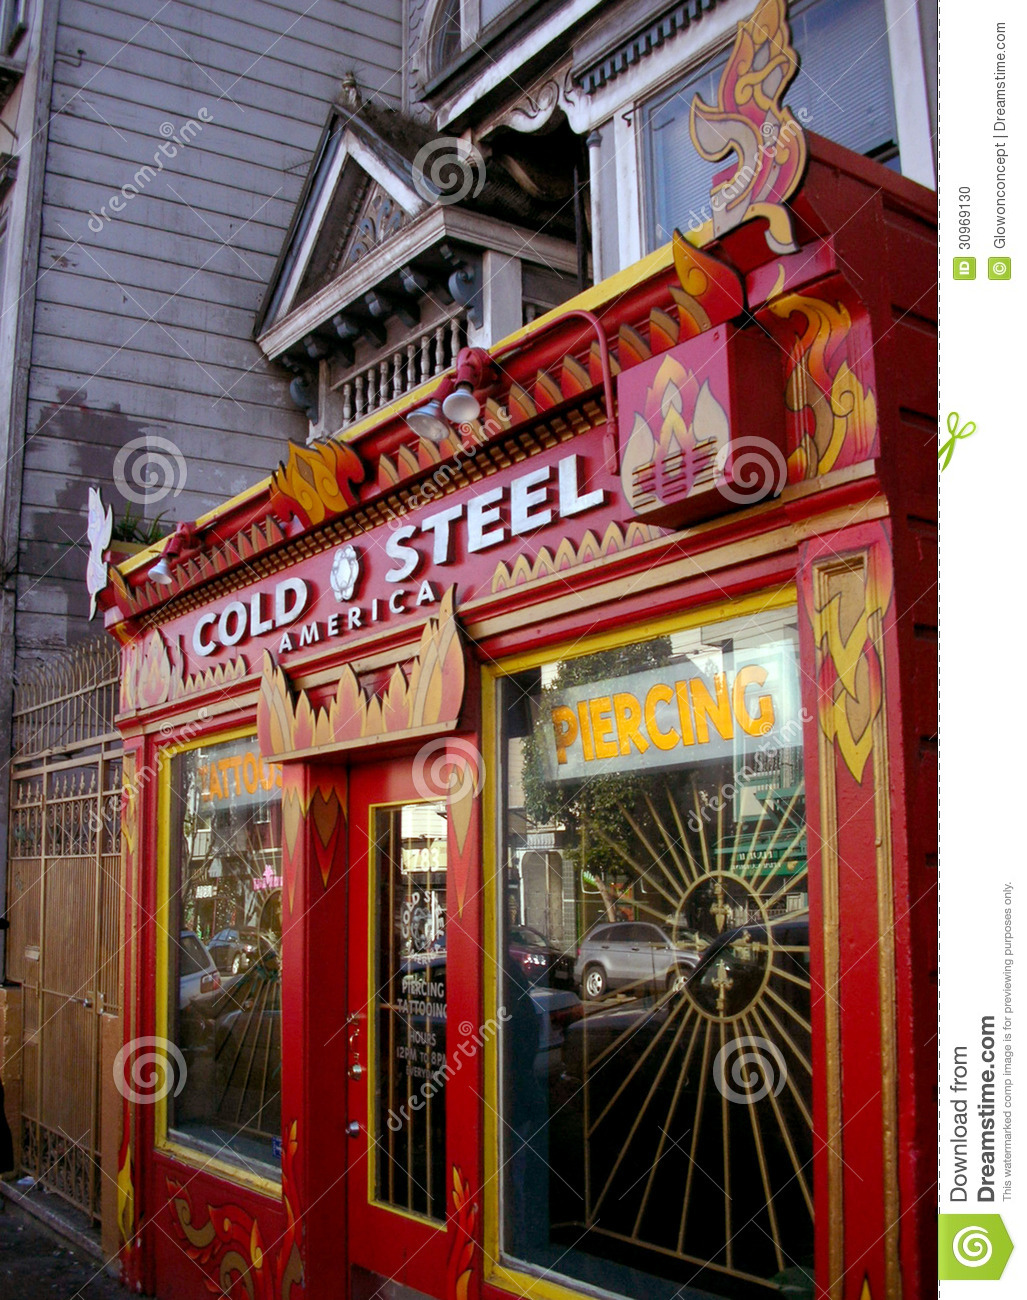 Shop America red tattoo shop in america editorial image - image: 30969130